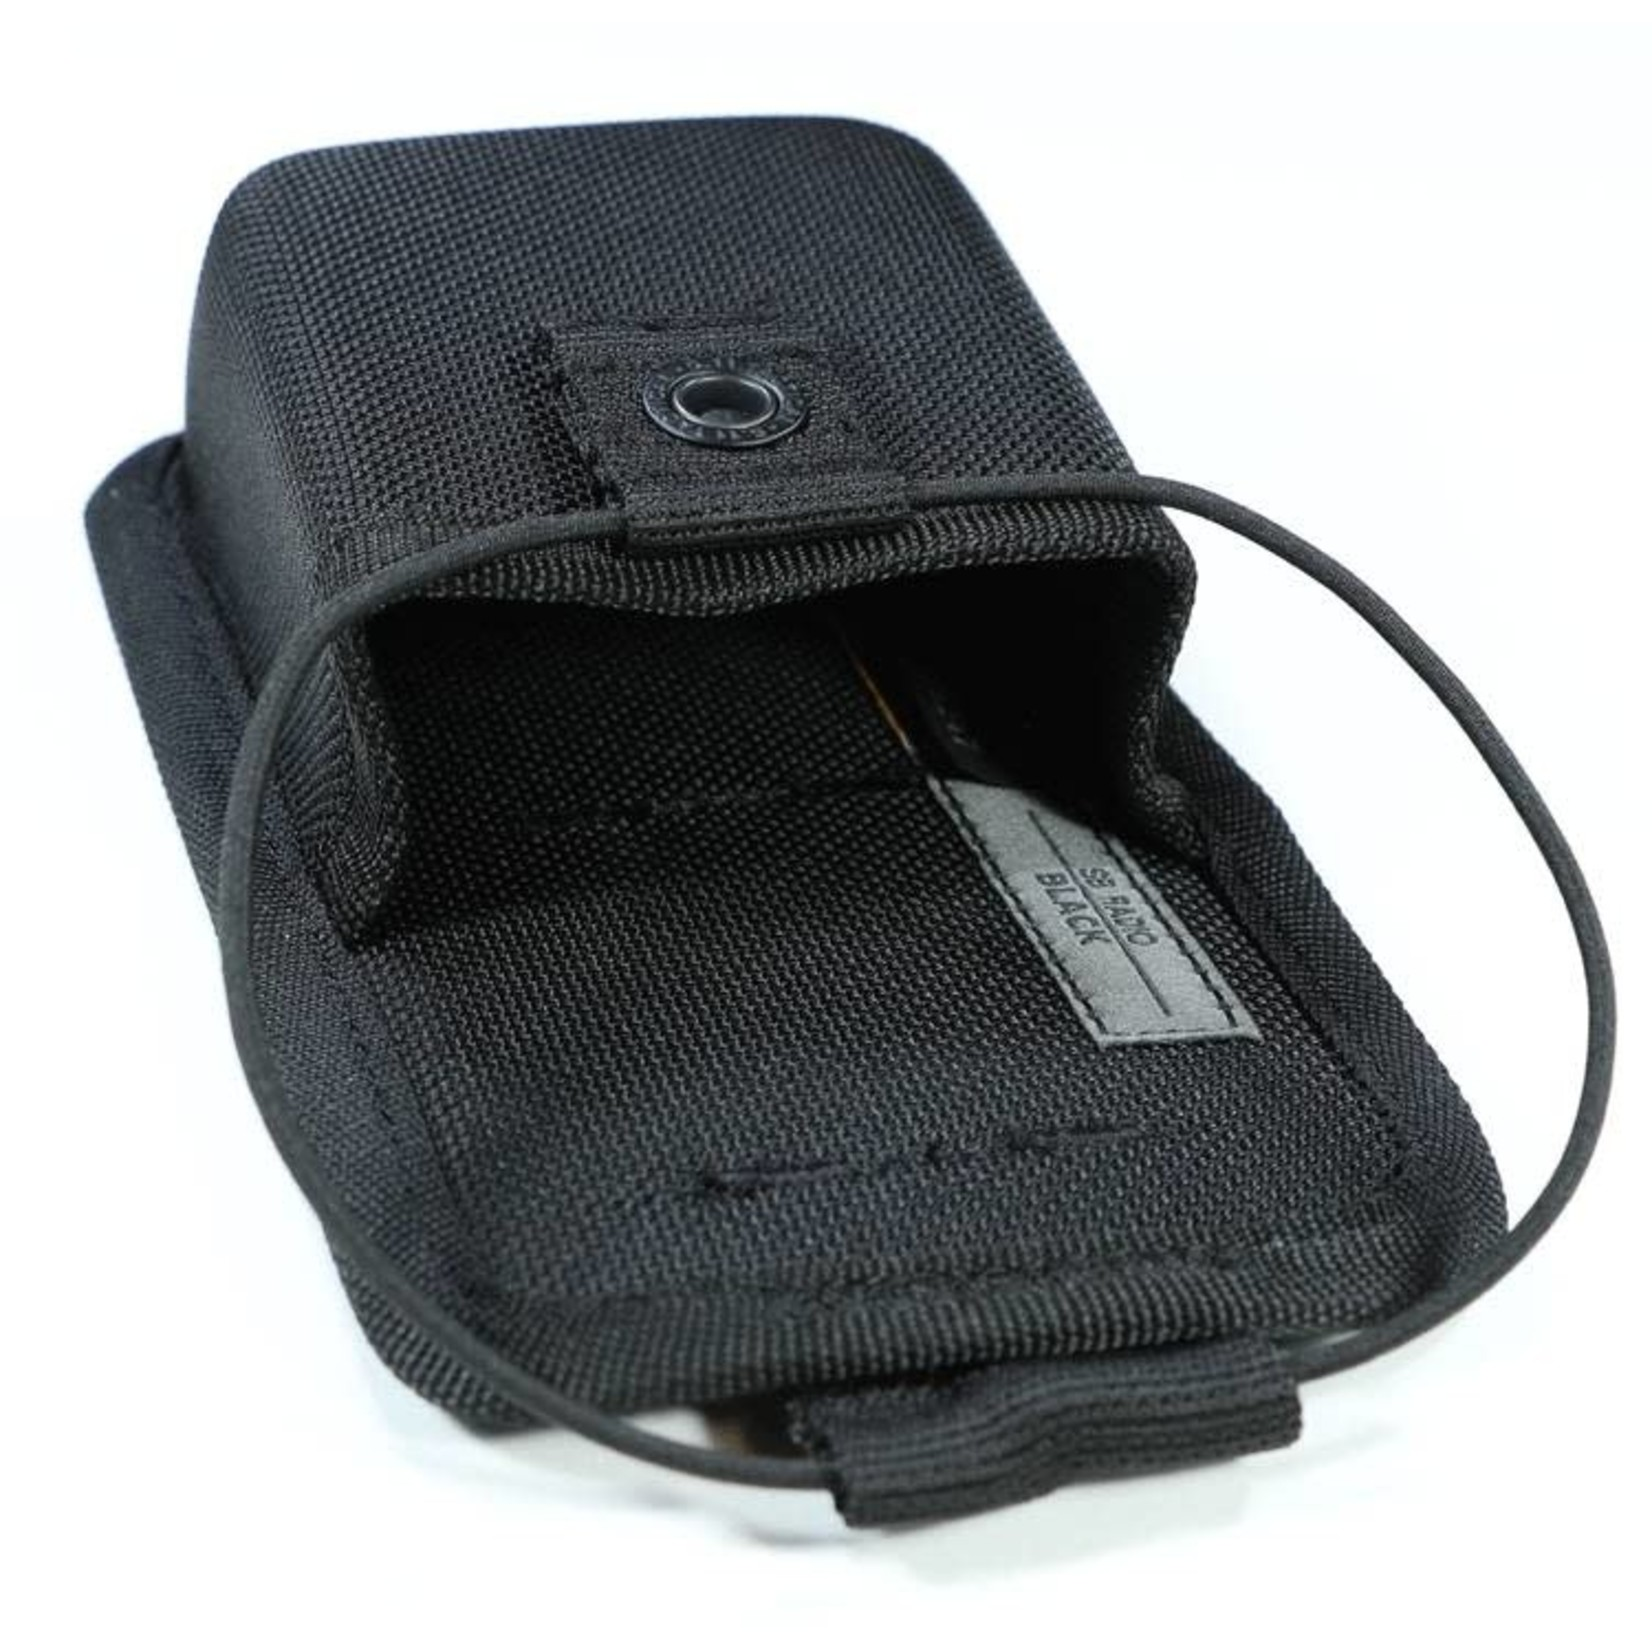 5.11 Tactical 5.11 SB Radio Pouch